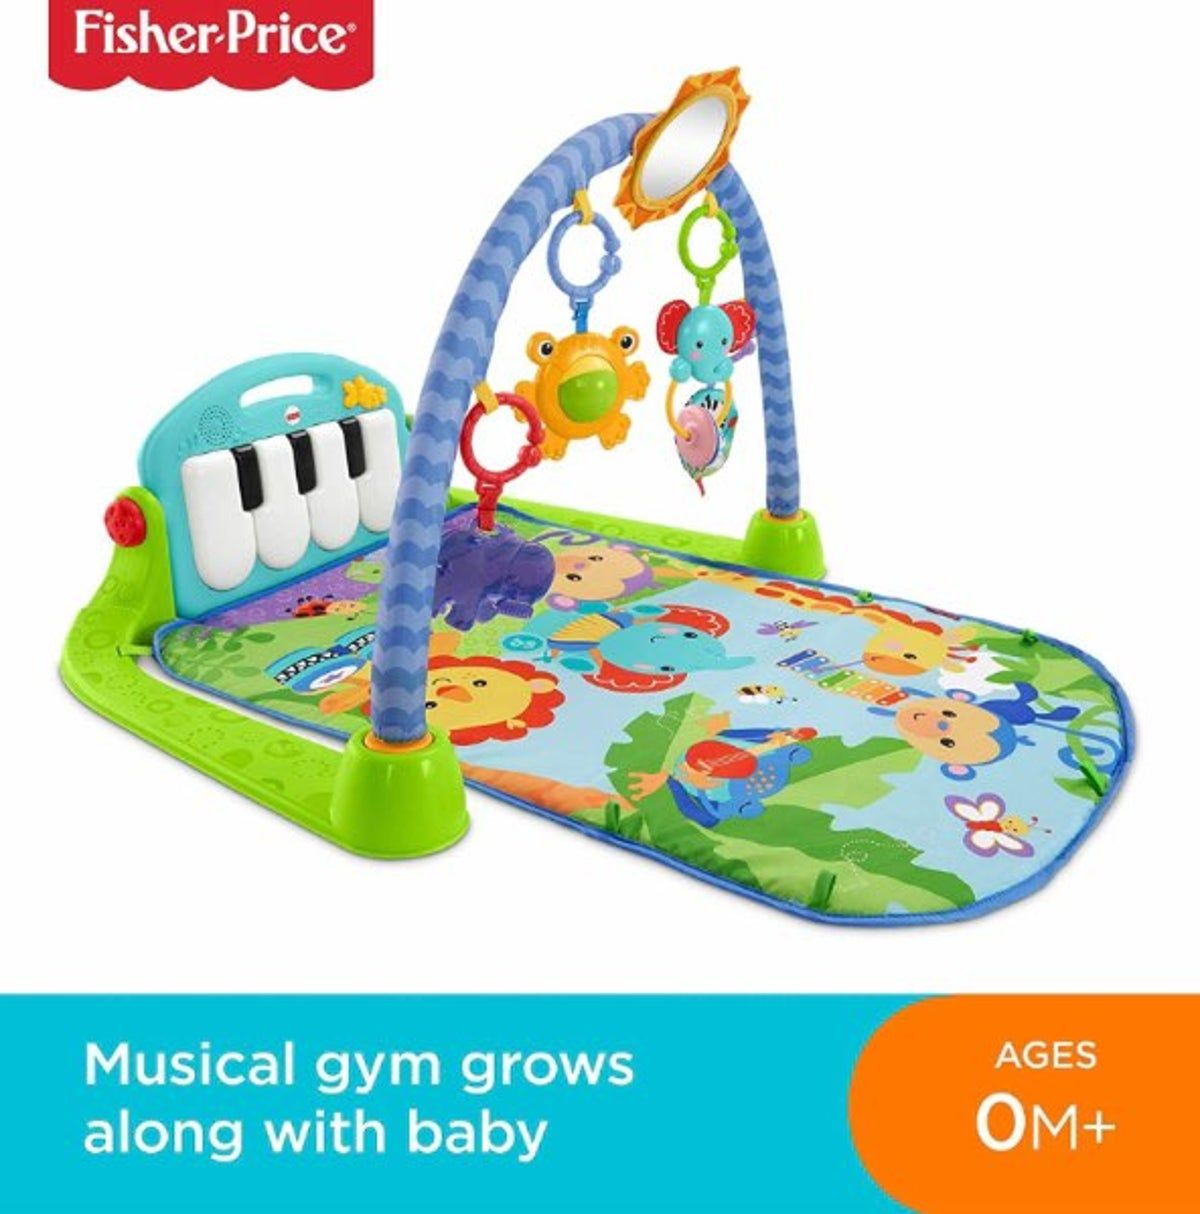 Pin By Babymartin On Activity Gear In 2020 Best Baby Play Mat Fisher Price Baby Play Mat